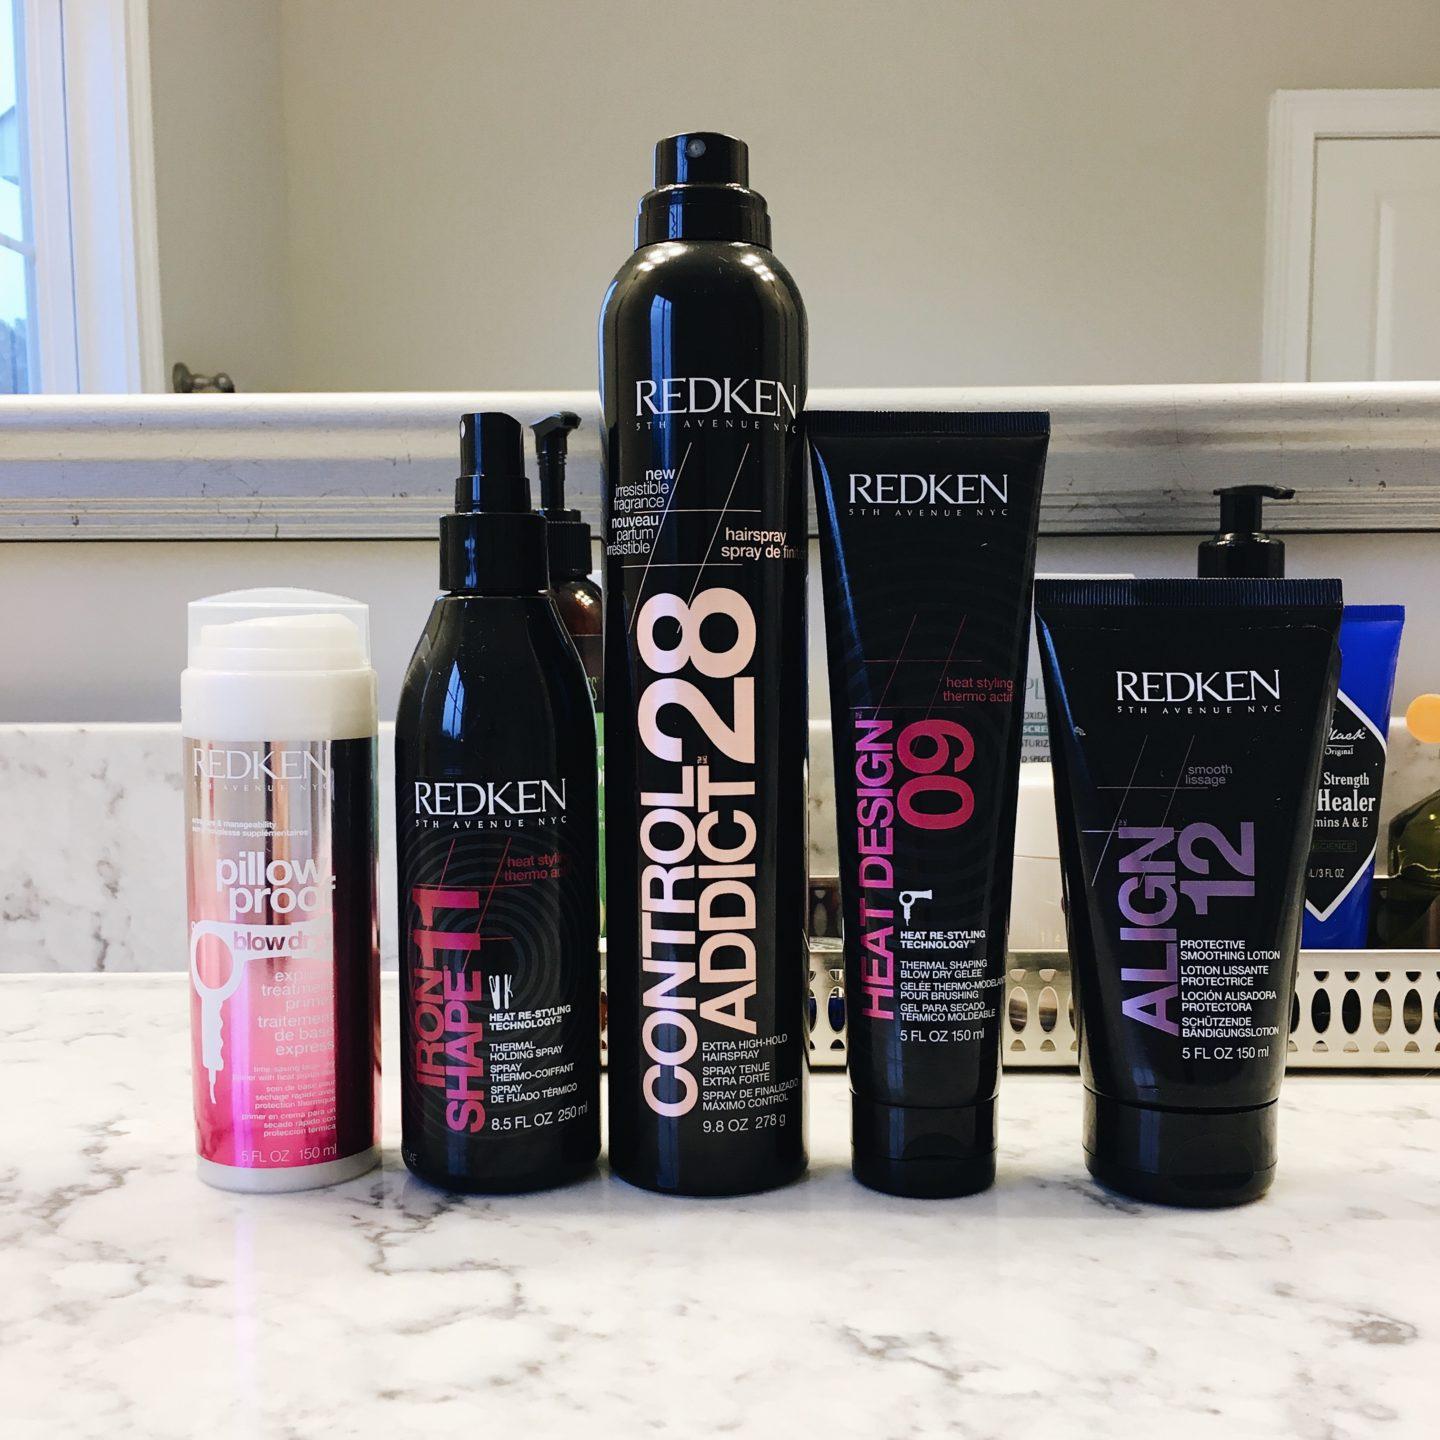 Redken Hair Products You Need For a Long Lasting Blowout